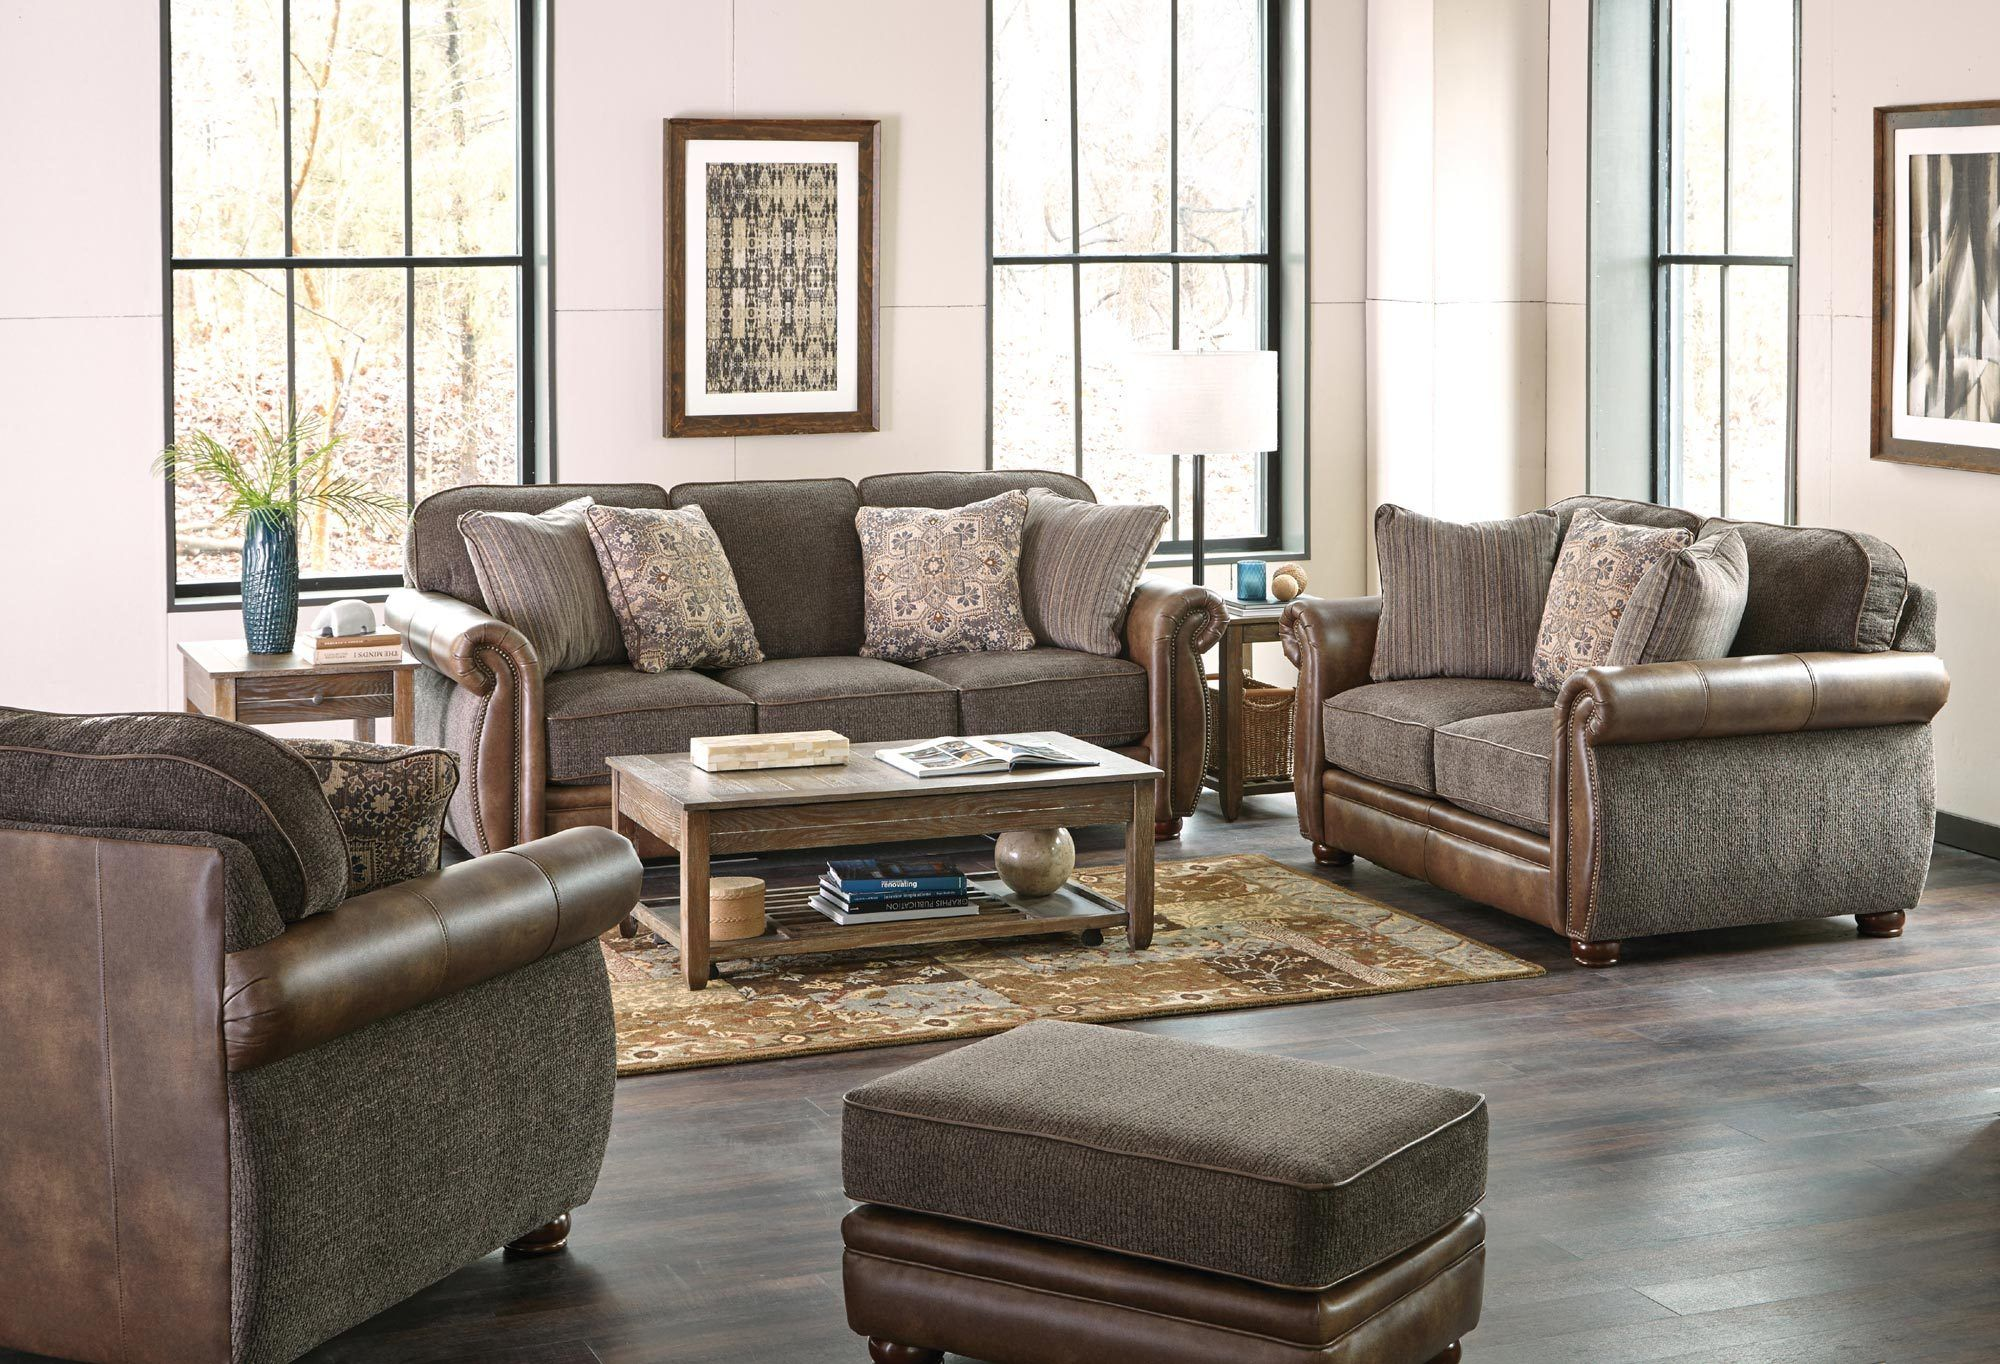 Awesome Design sofa Set with MarmsWeb